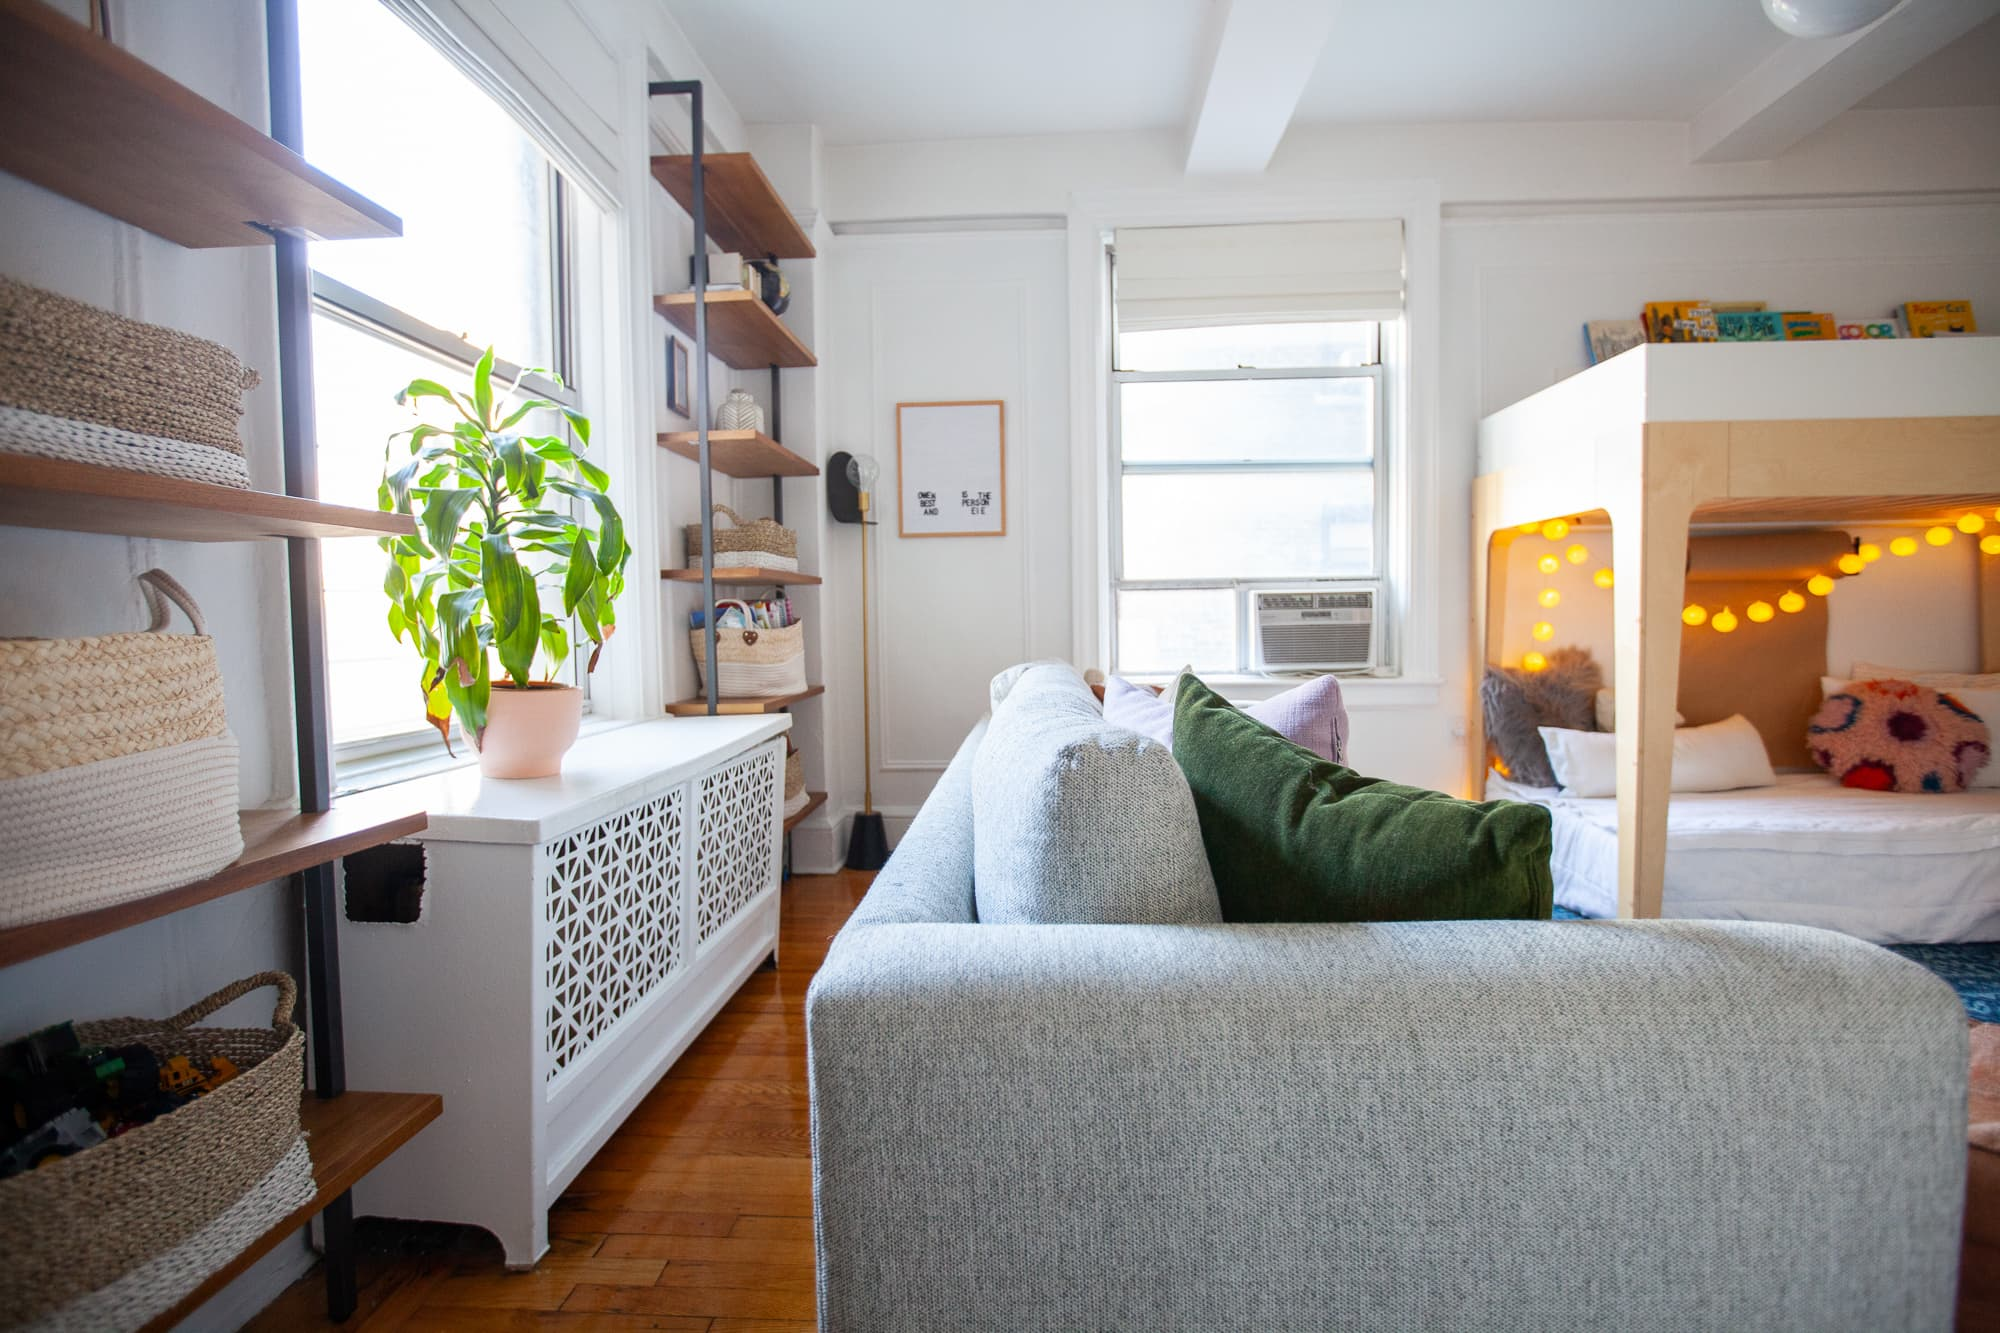 A Family Of Four Is Living In A Stylish, Extremely Organized 700 Square Feet :